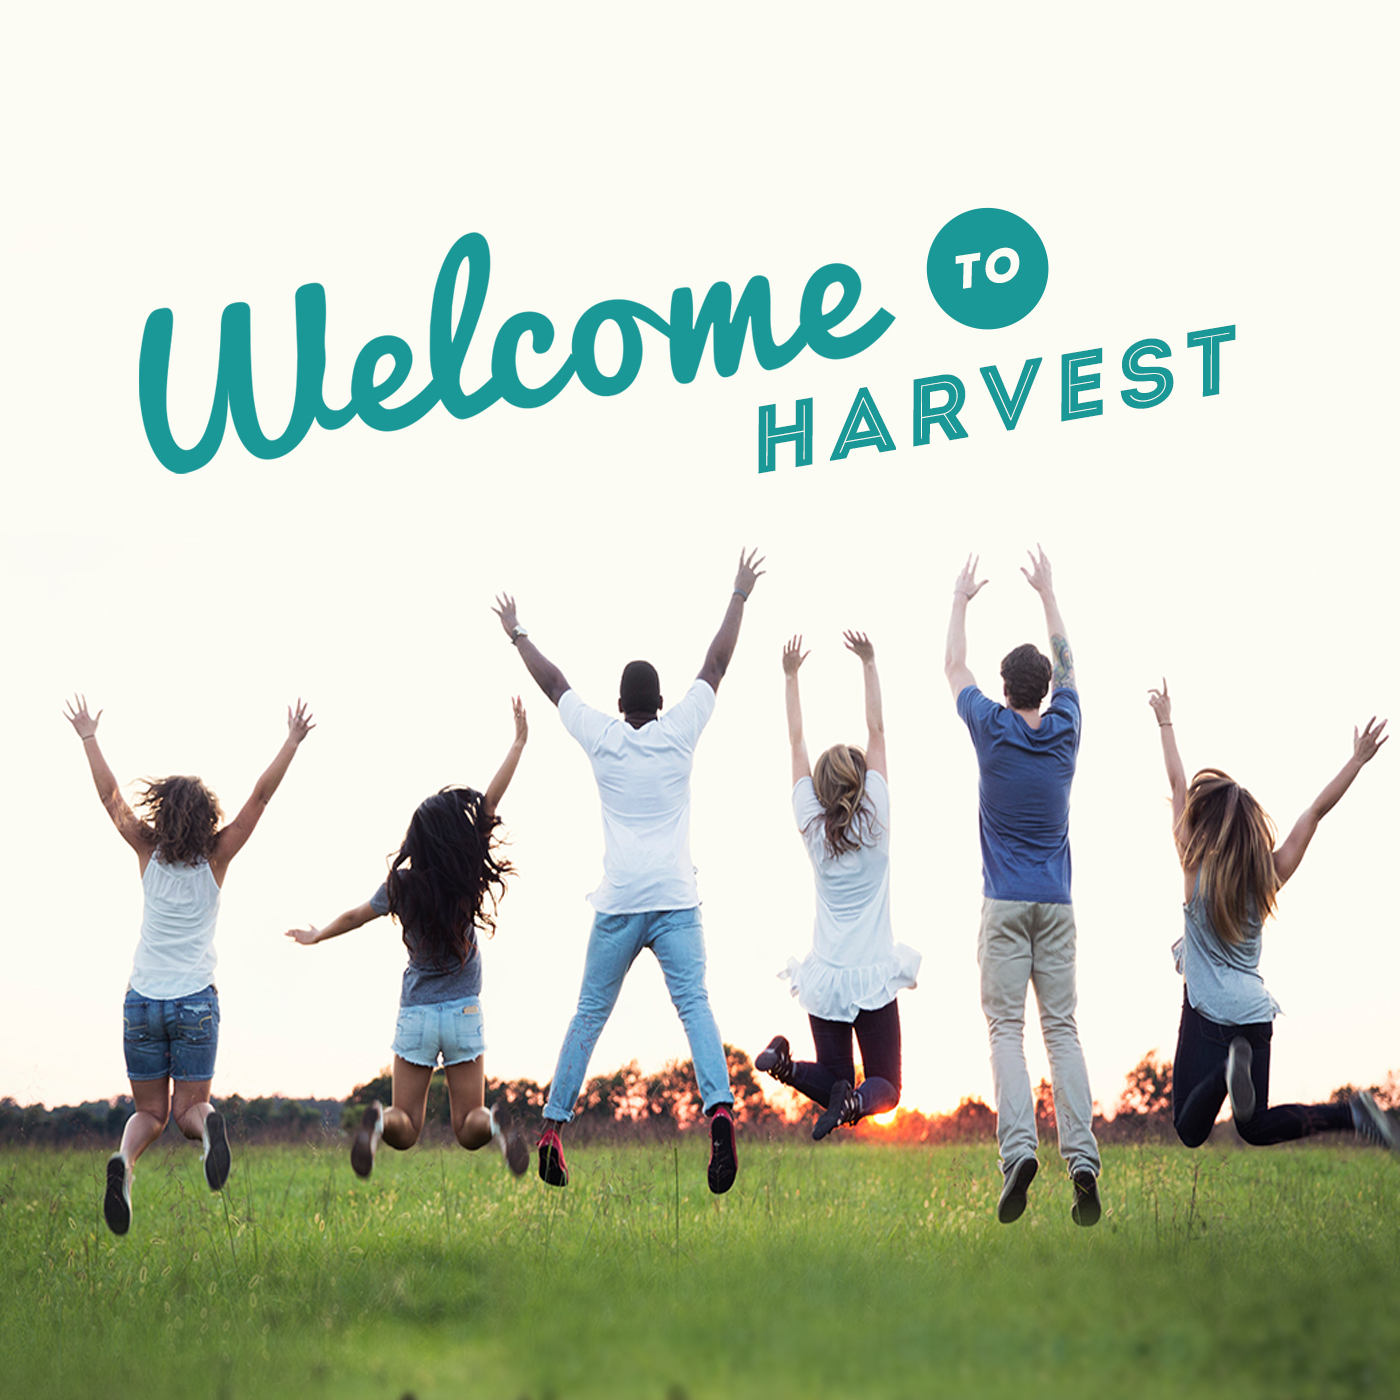 Welcome to Harvest